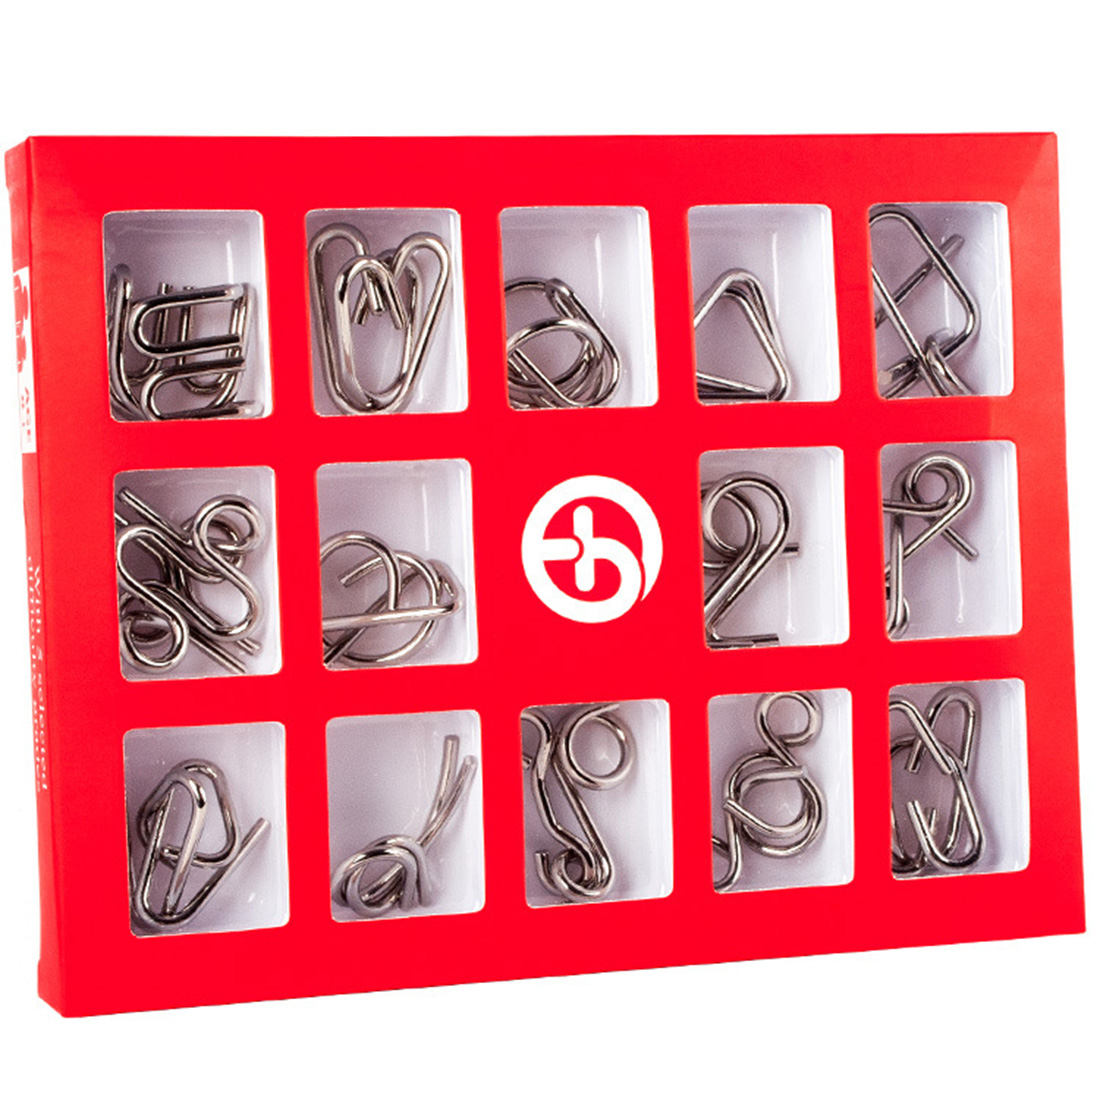 15Pcs Brain Puzzles Intelligence Buckle Lock Toy Support Children Braning Sets Kids Educational Toys Hobbies For Adults